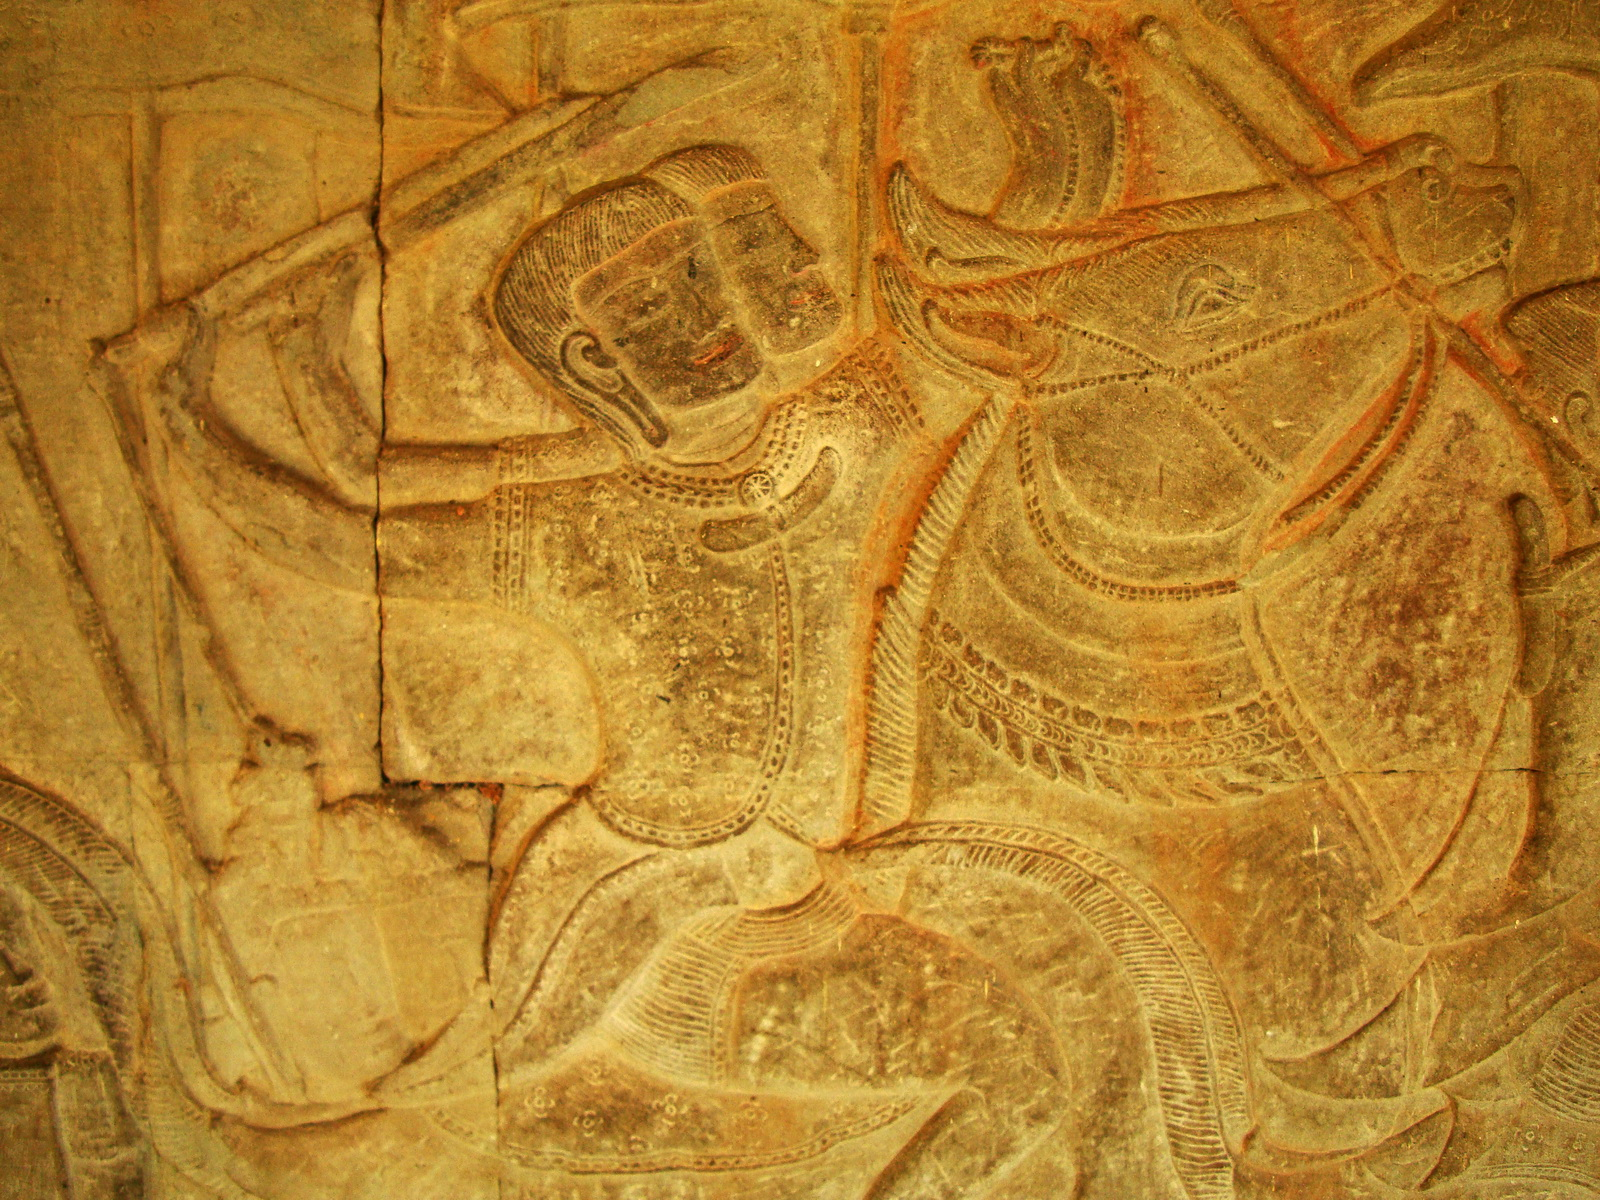 Angkor Wat Bas relief S Gallery W Wing Historic Procession 047